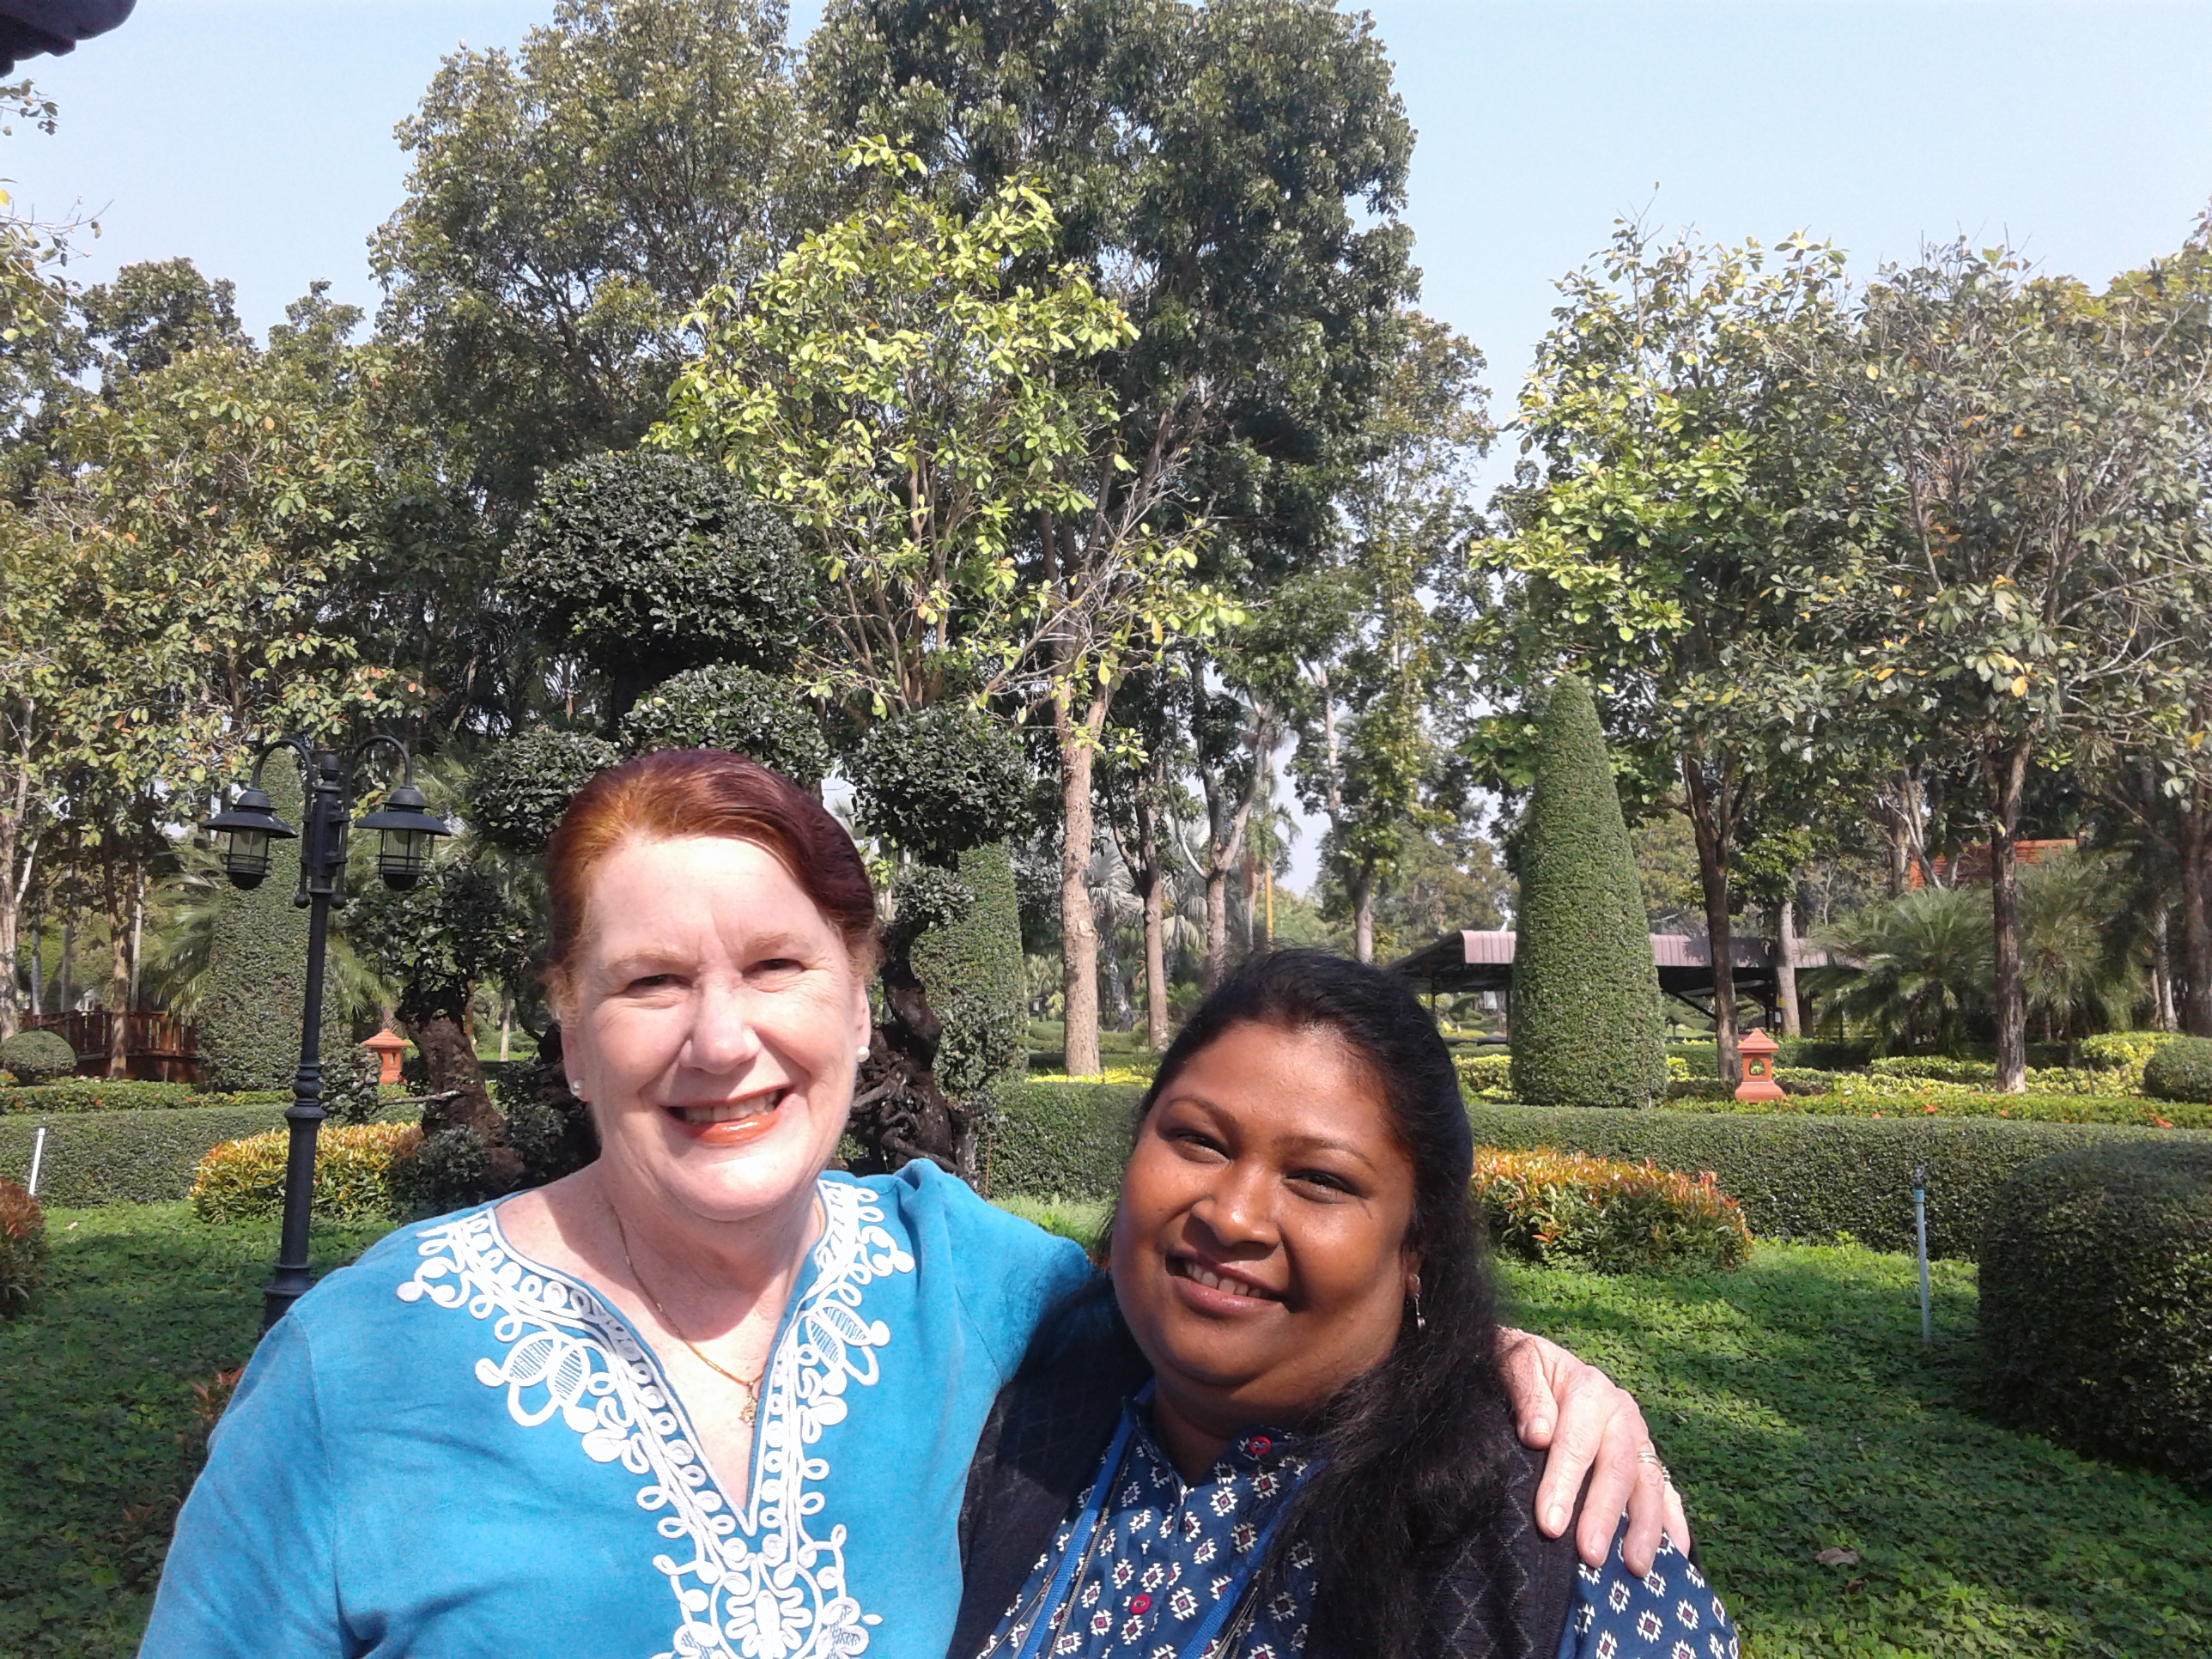 Suchitra Behera of the Church of Bangladesh with Marlene.